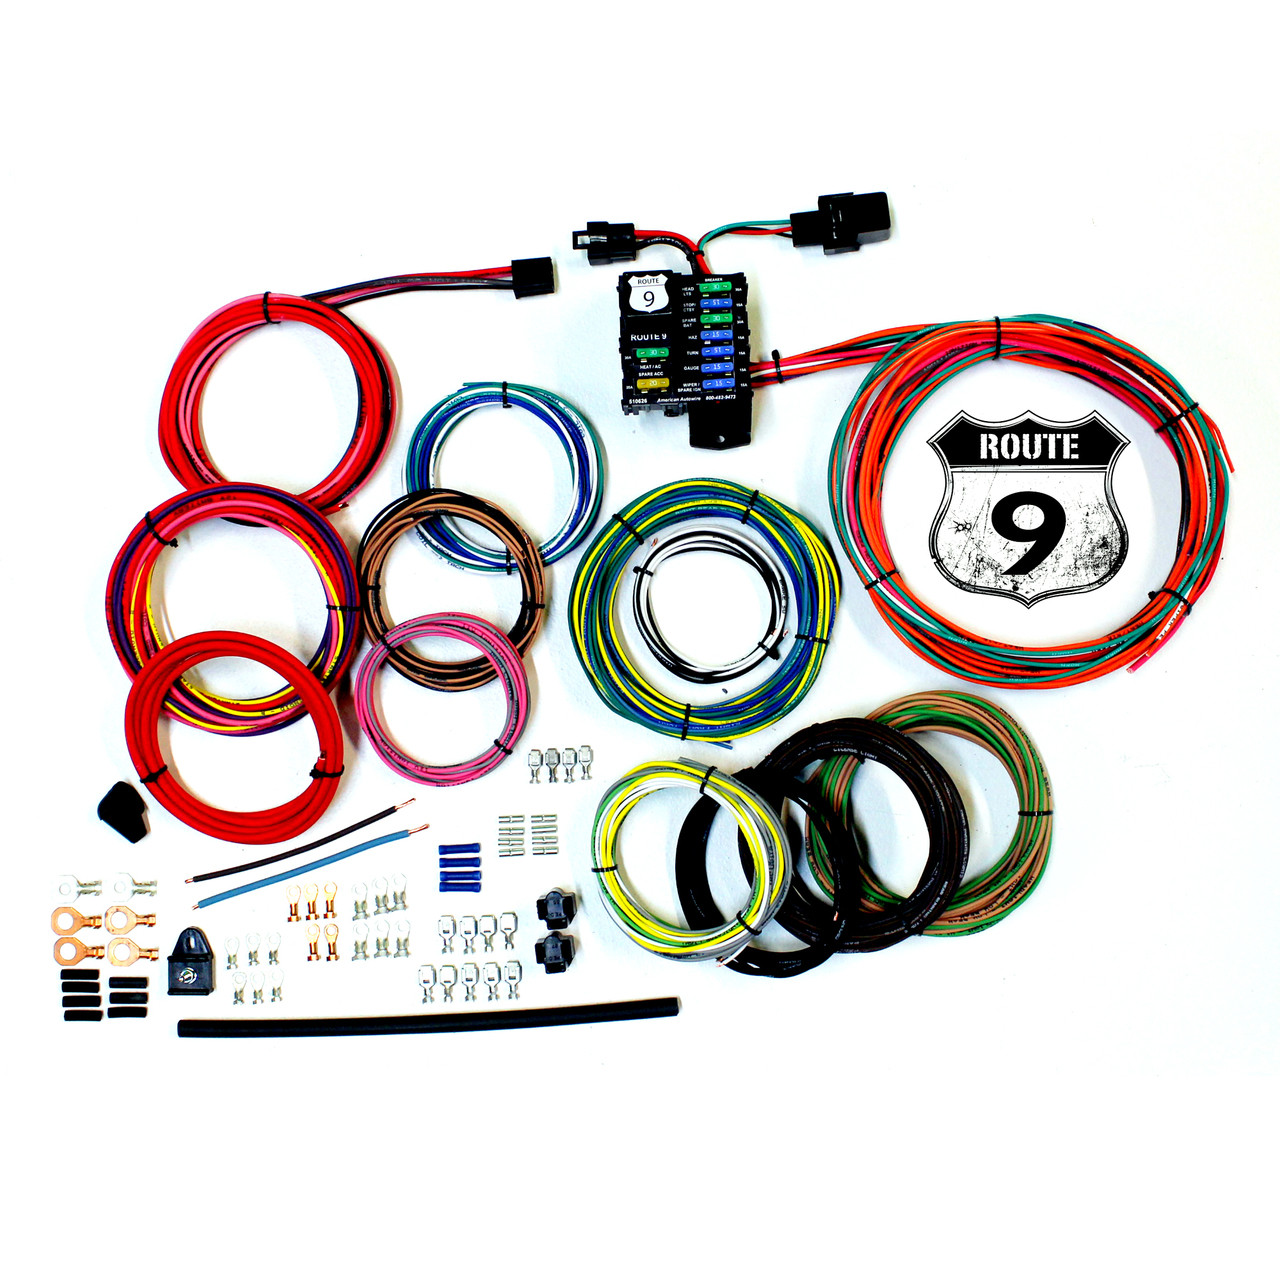 hight resolution of american autowire route 9 universal wiring kit ame 510625